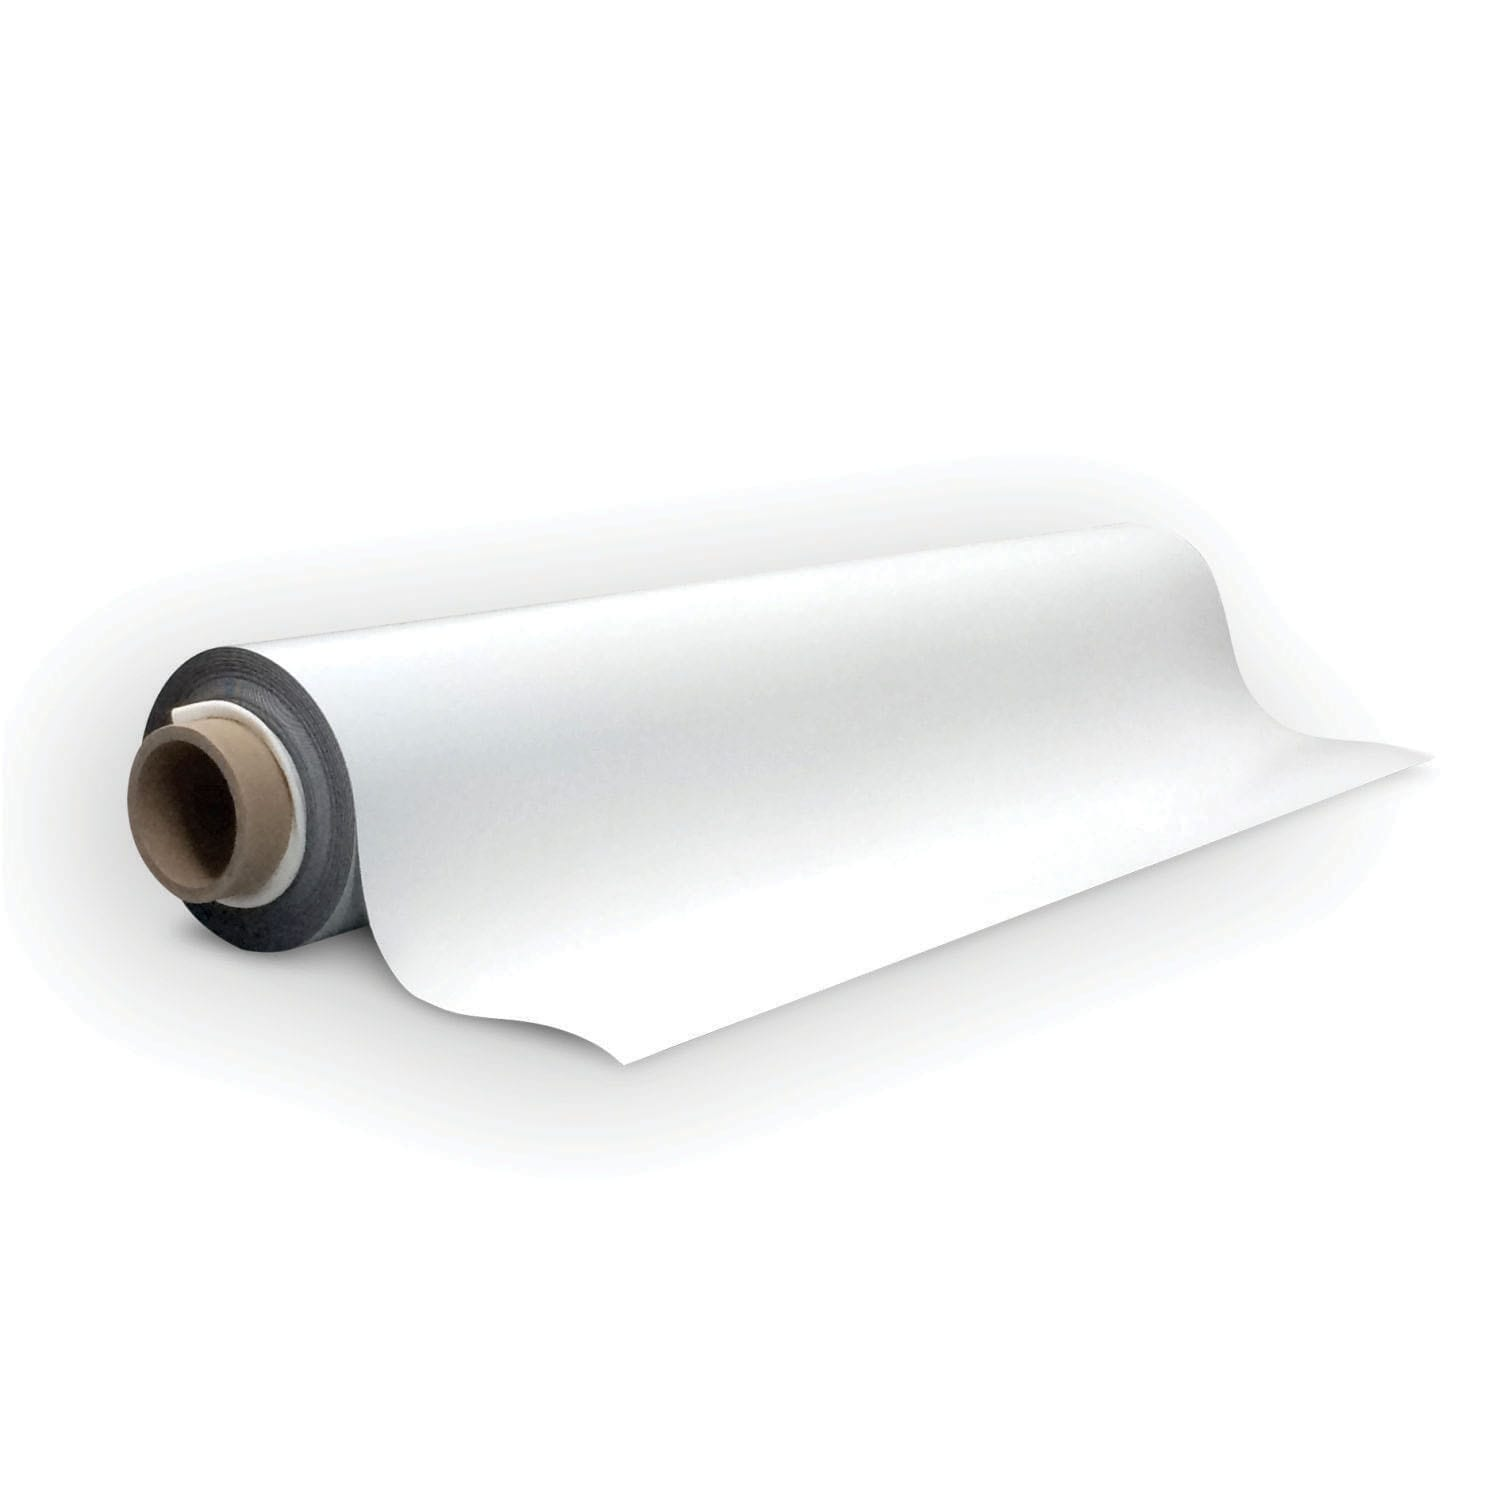 image relating to Printable Magnetic Sheeting known as SignMag Huge Layout Printable Motor vehicle Harmless Magnetic Sheeting - 15m Roll